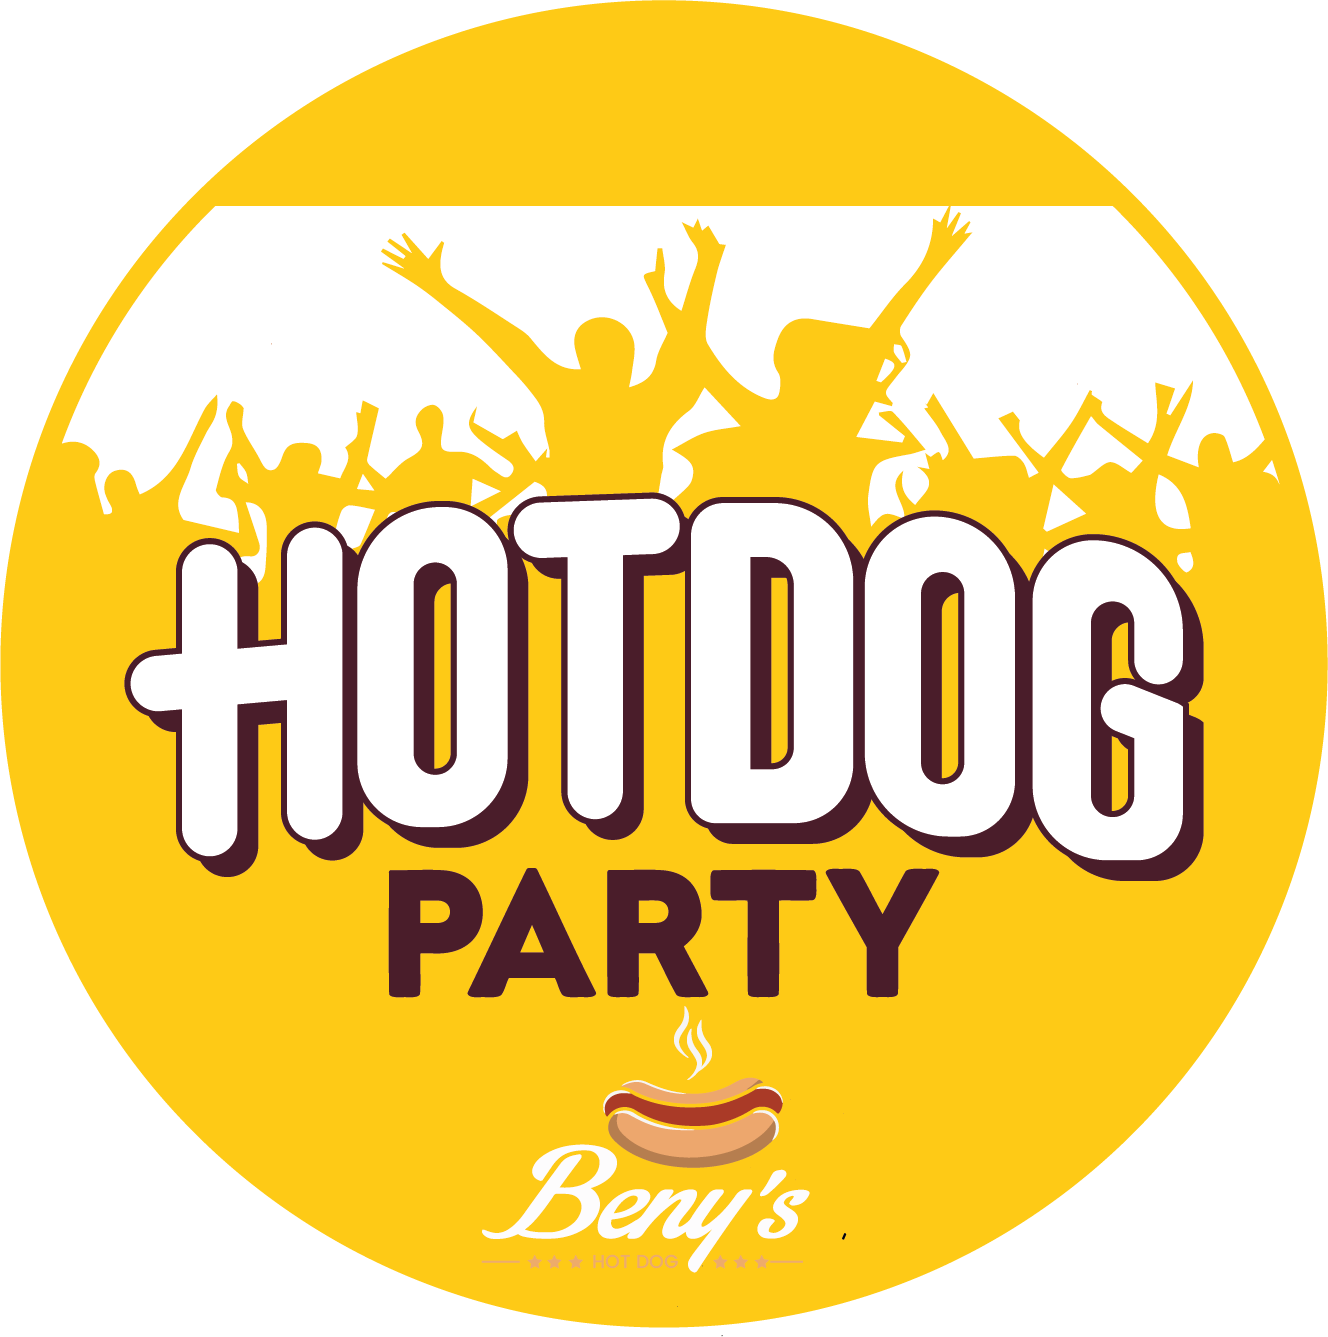 Beny's Hotdog Party